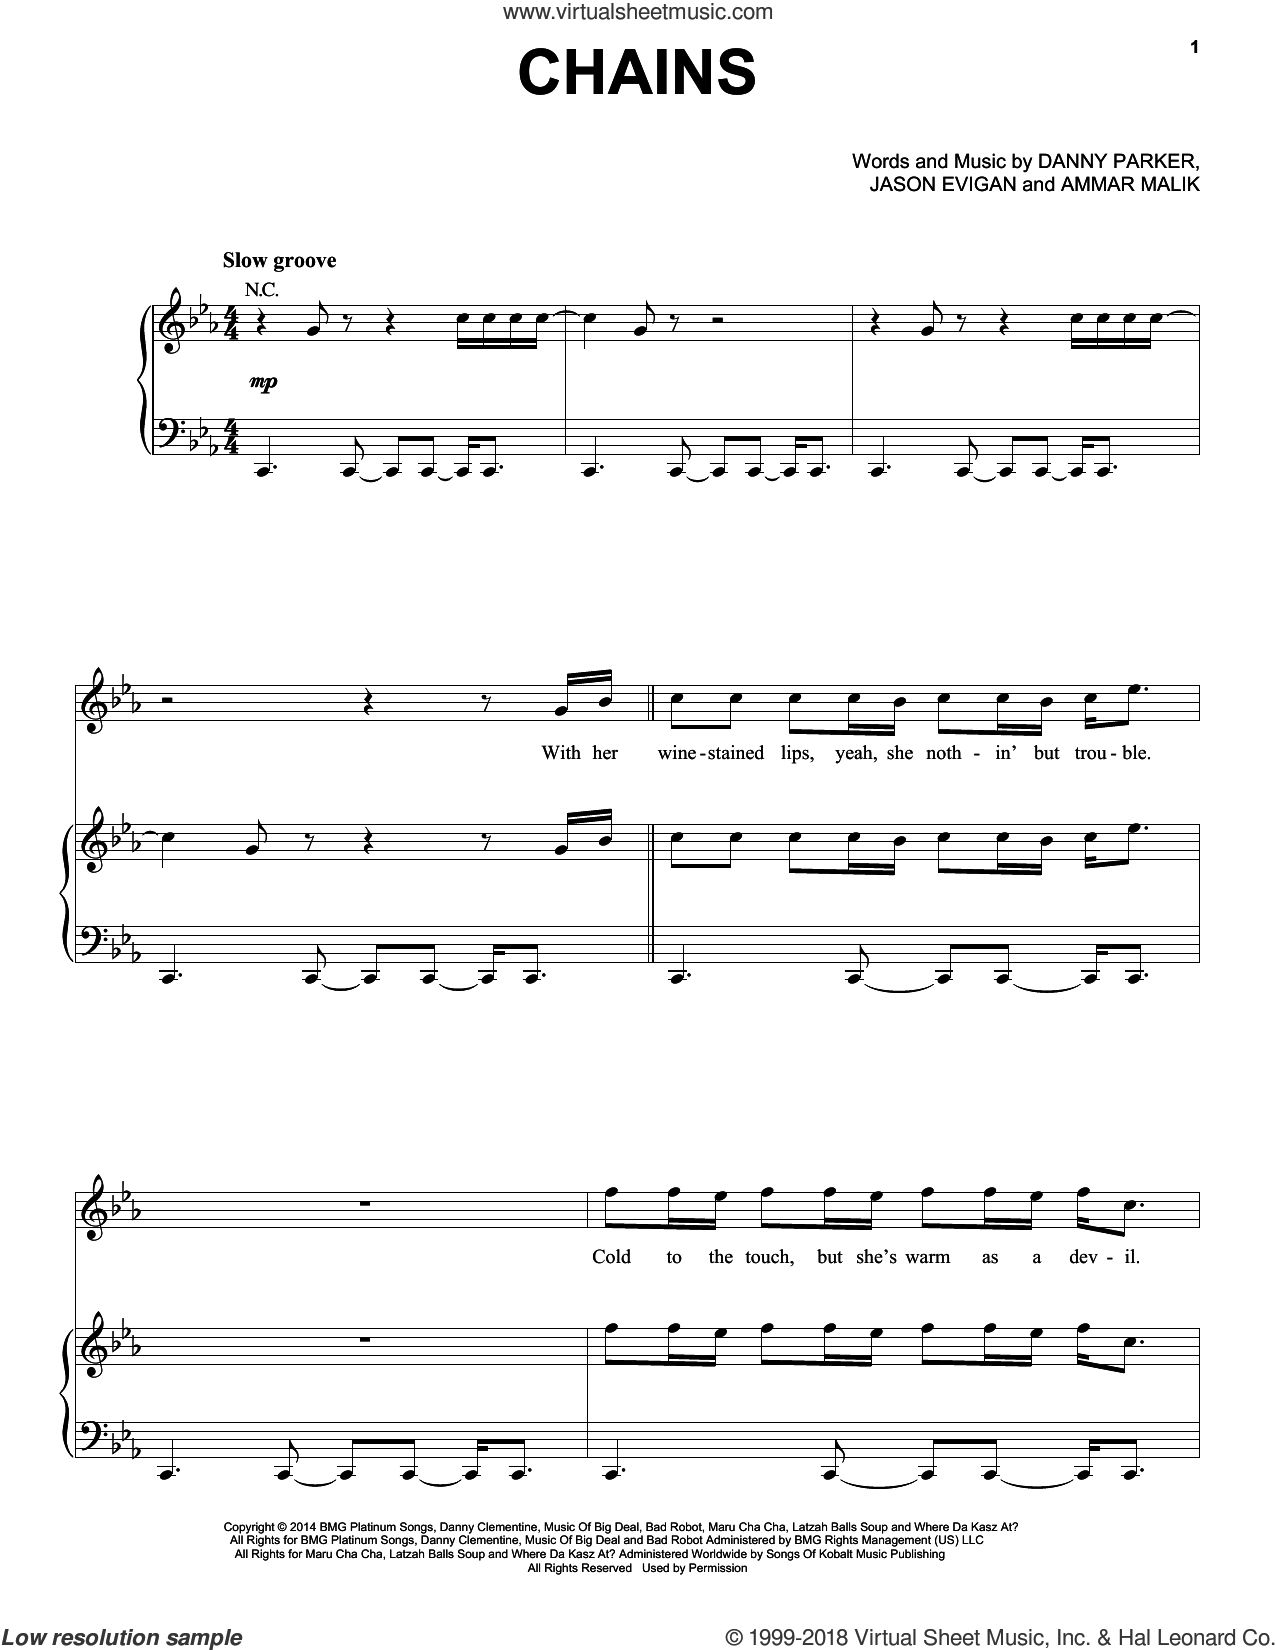 Chains sheet music for voice, piano or guitar by Nick Jonas, Ammar Malik, Danny Parker and Jason Evigan, intermediate skill level